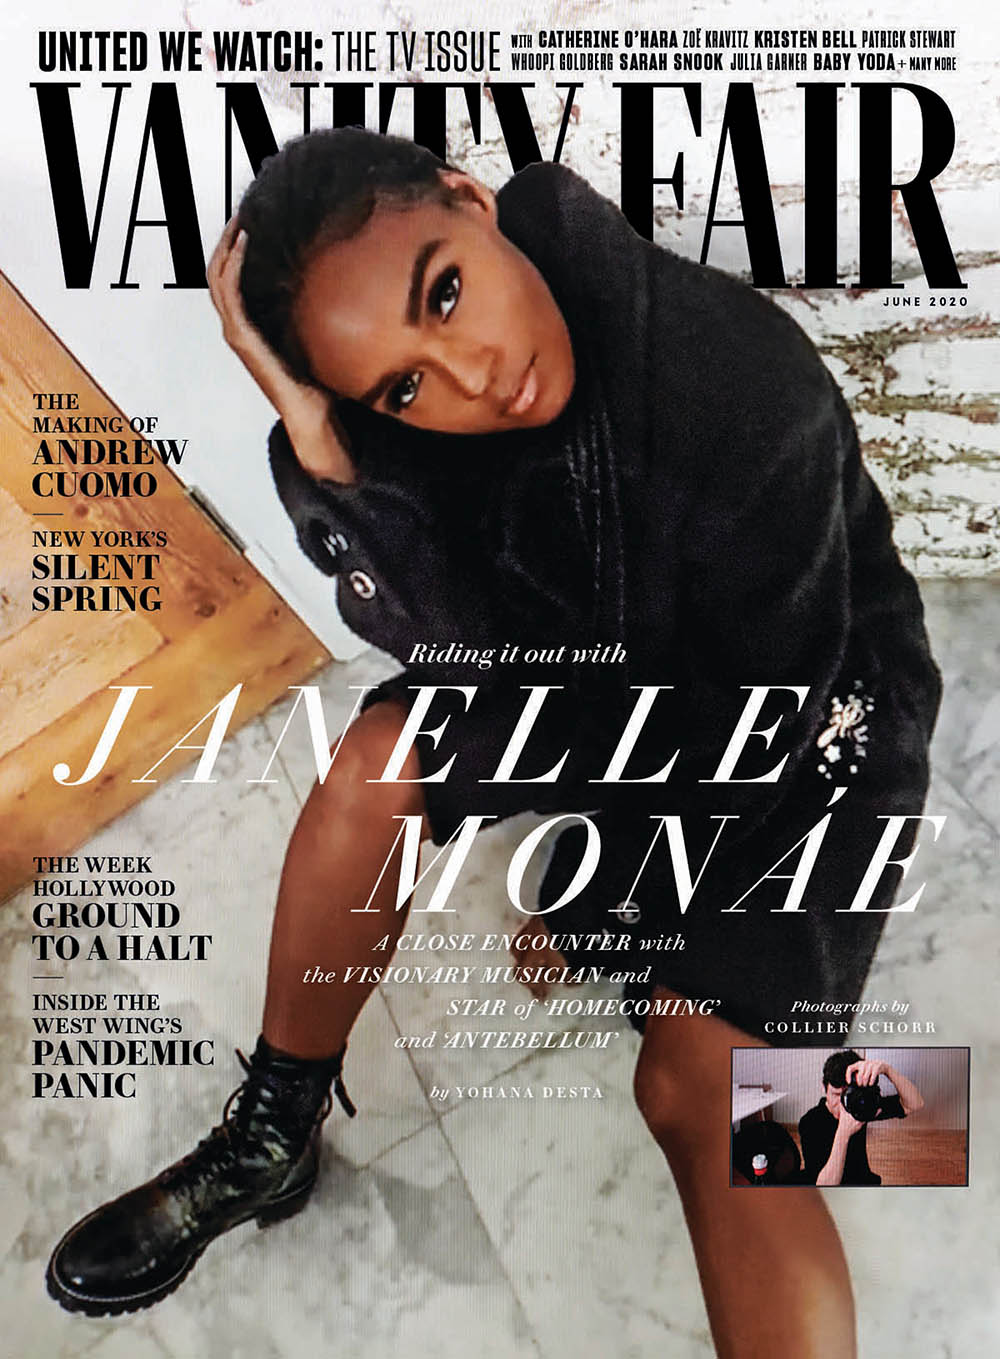 Janelle Monáe covers Vanity Fair June 2020 by Collier Schorr